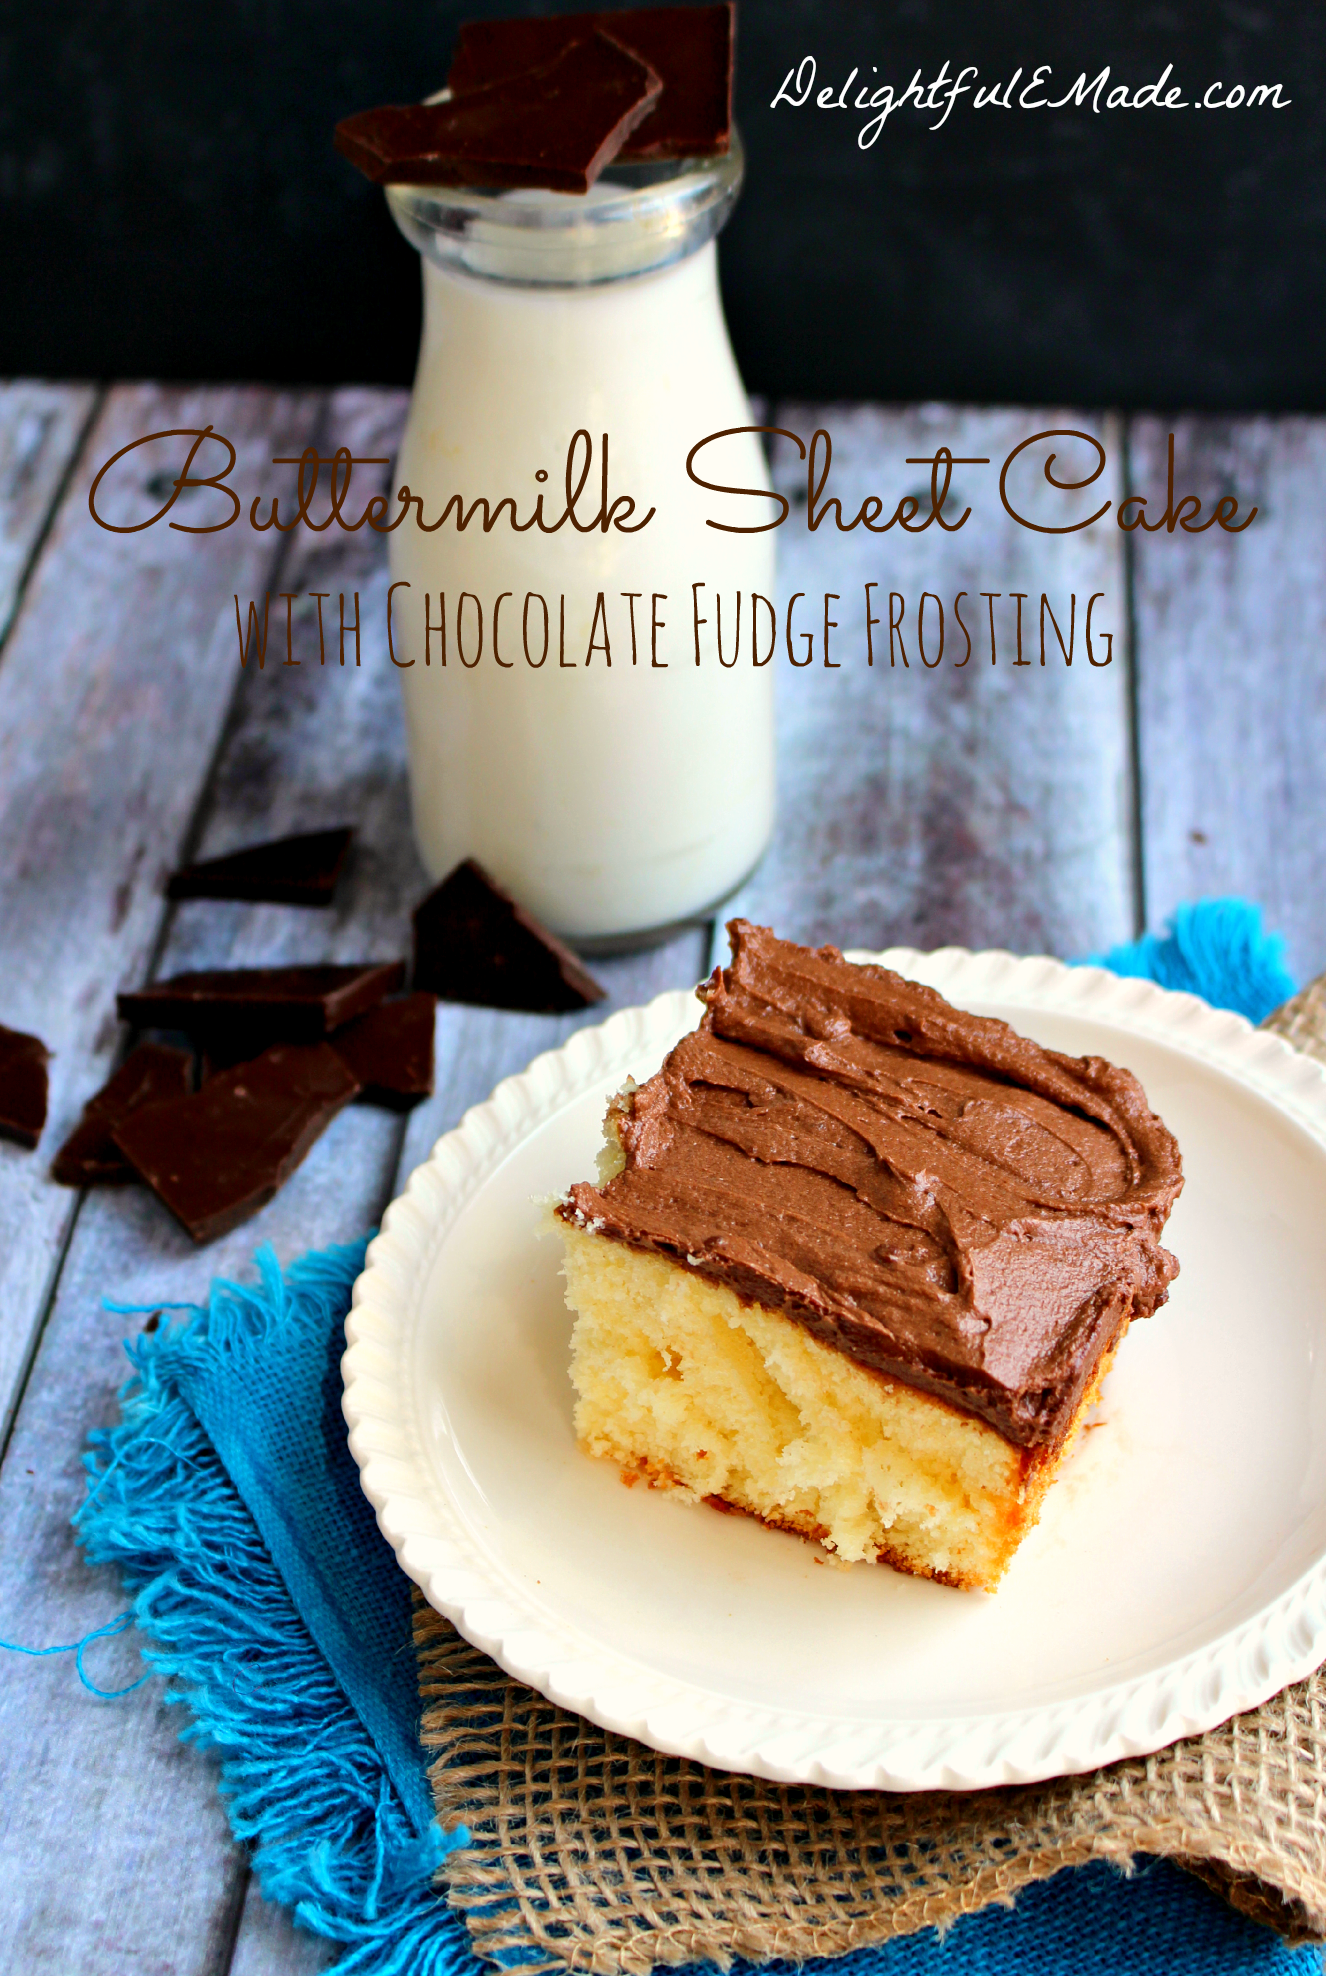 Buttermilk Sheet Cake with Chocolate Fudge Frosting by DelightfulEMade ...